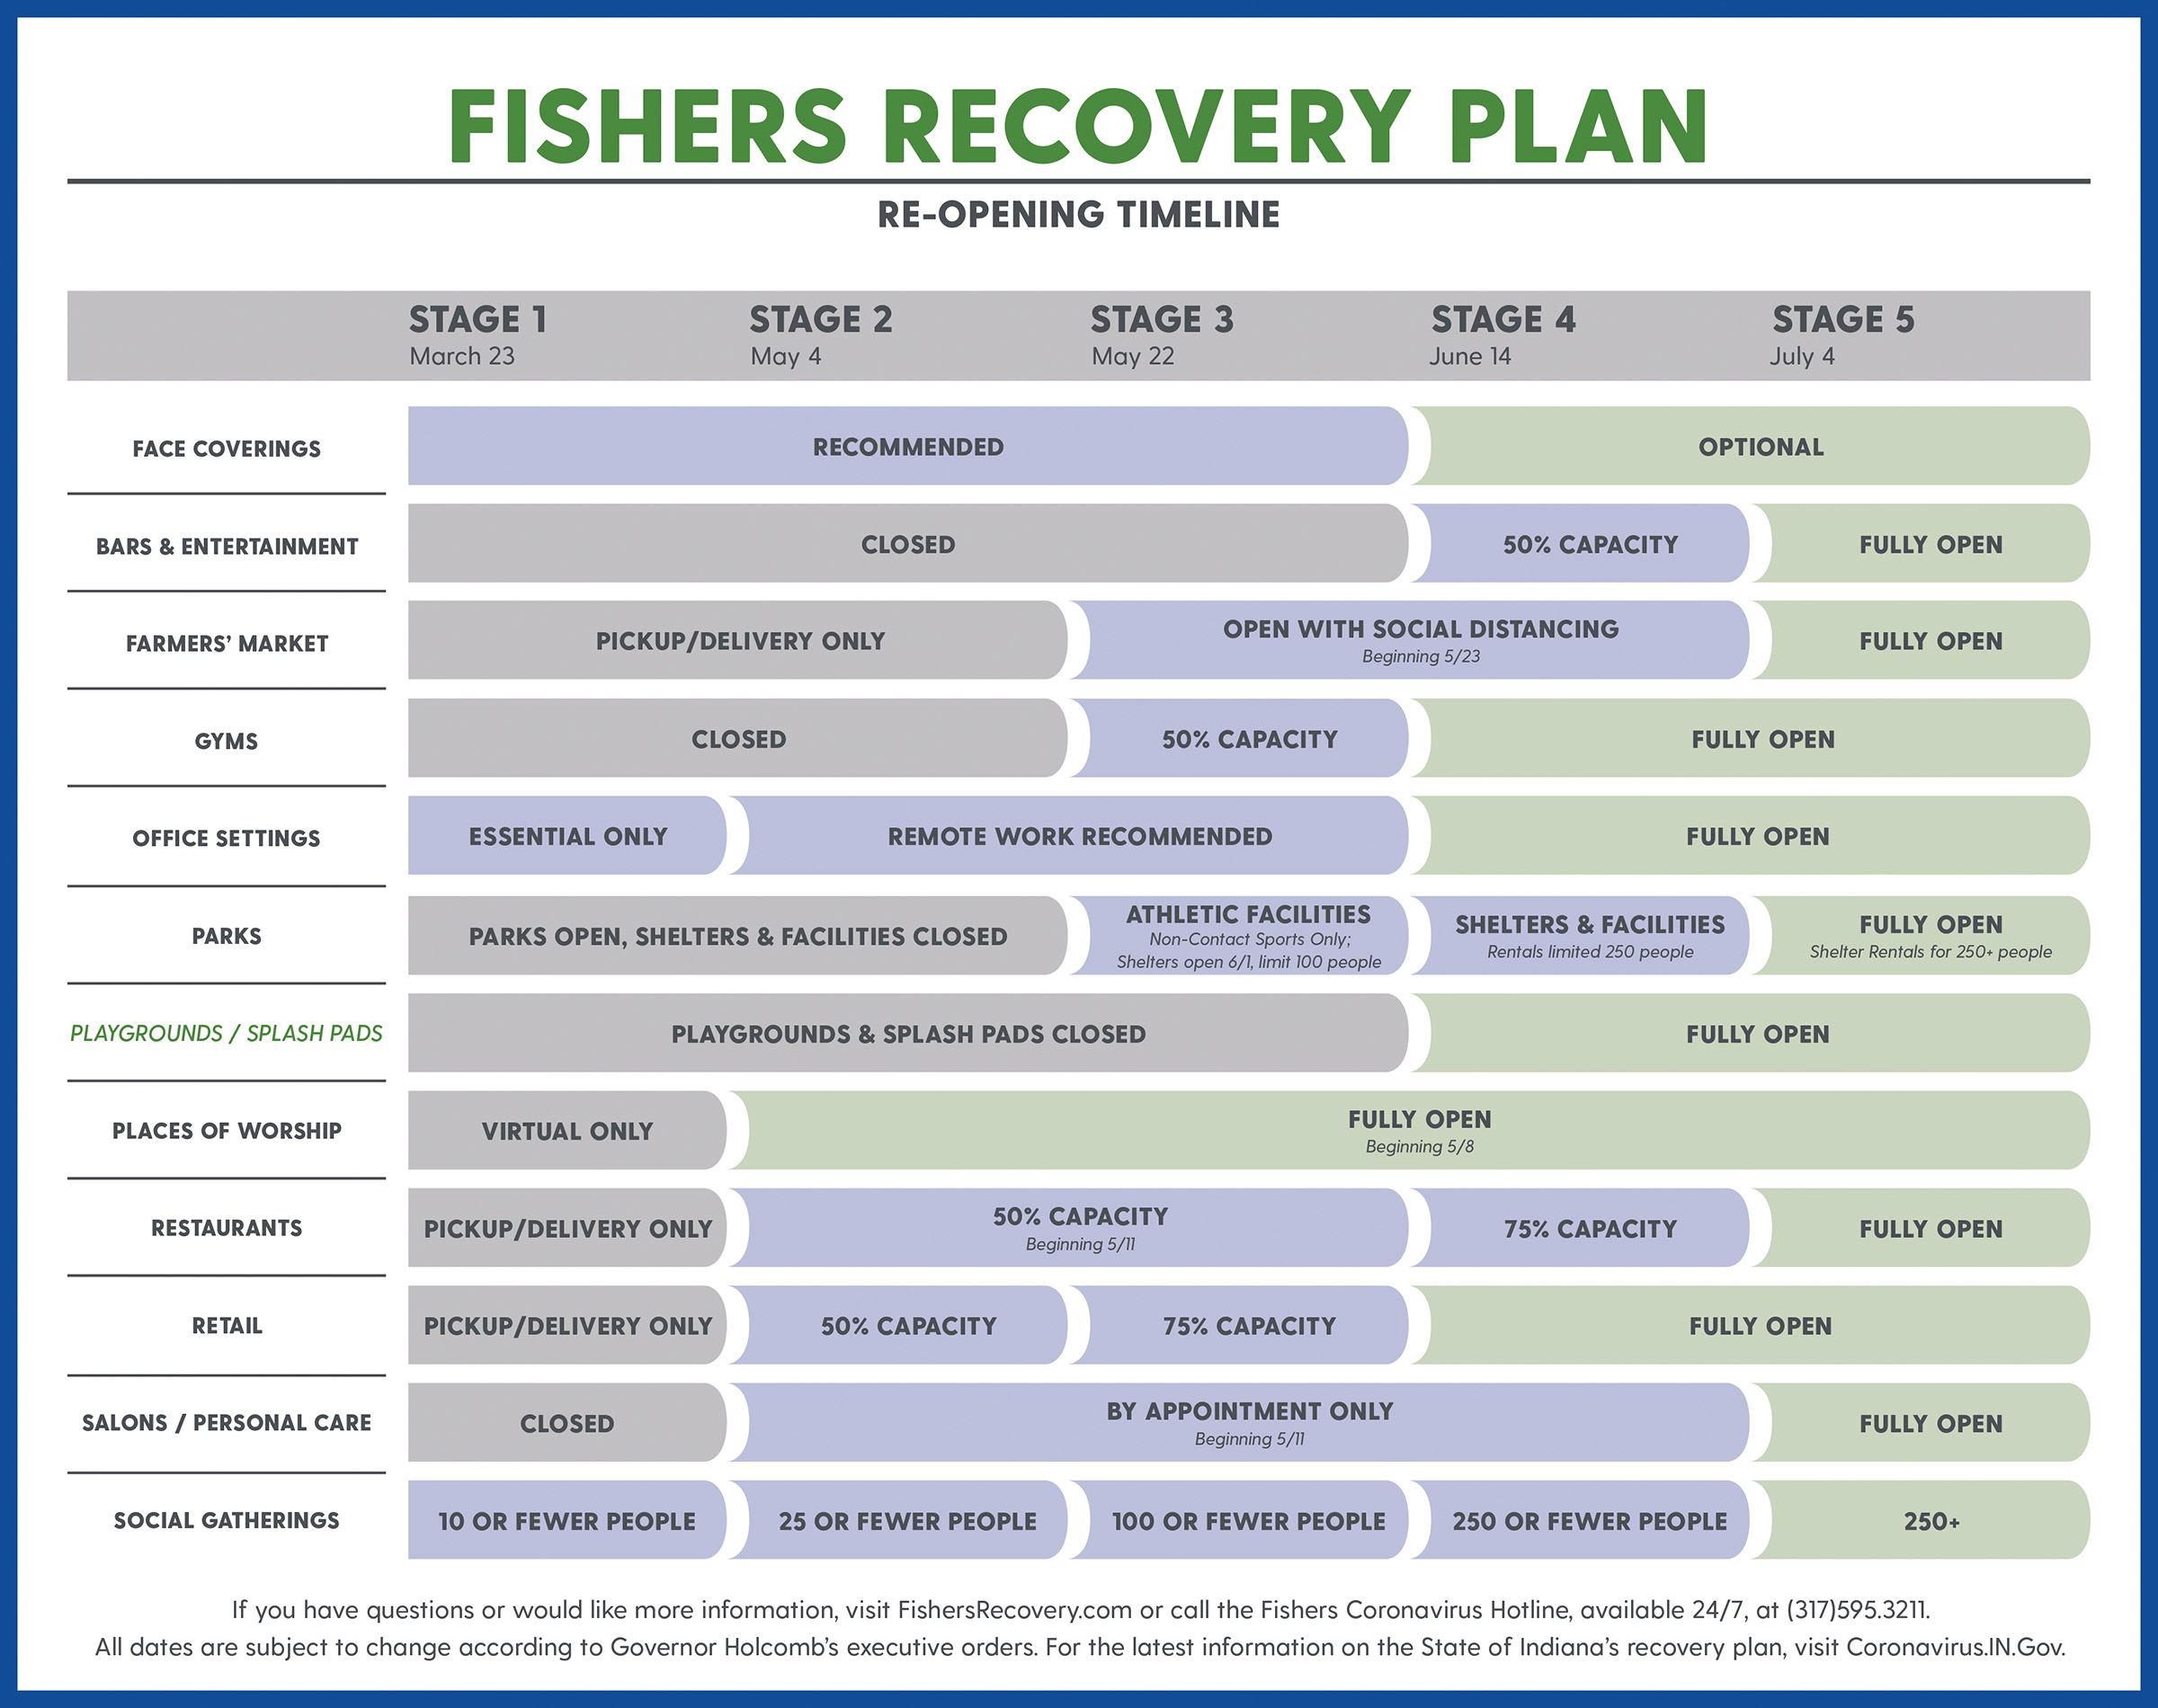 Fishers2020_COVID19_FishersRecoverPlan_UPDATED_5-22